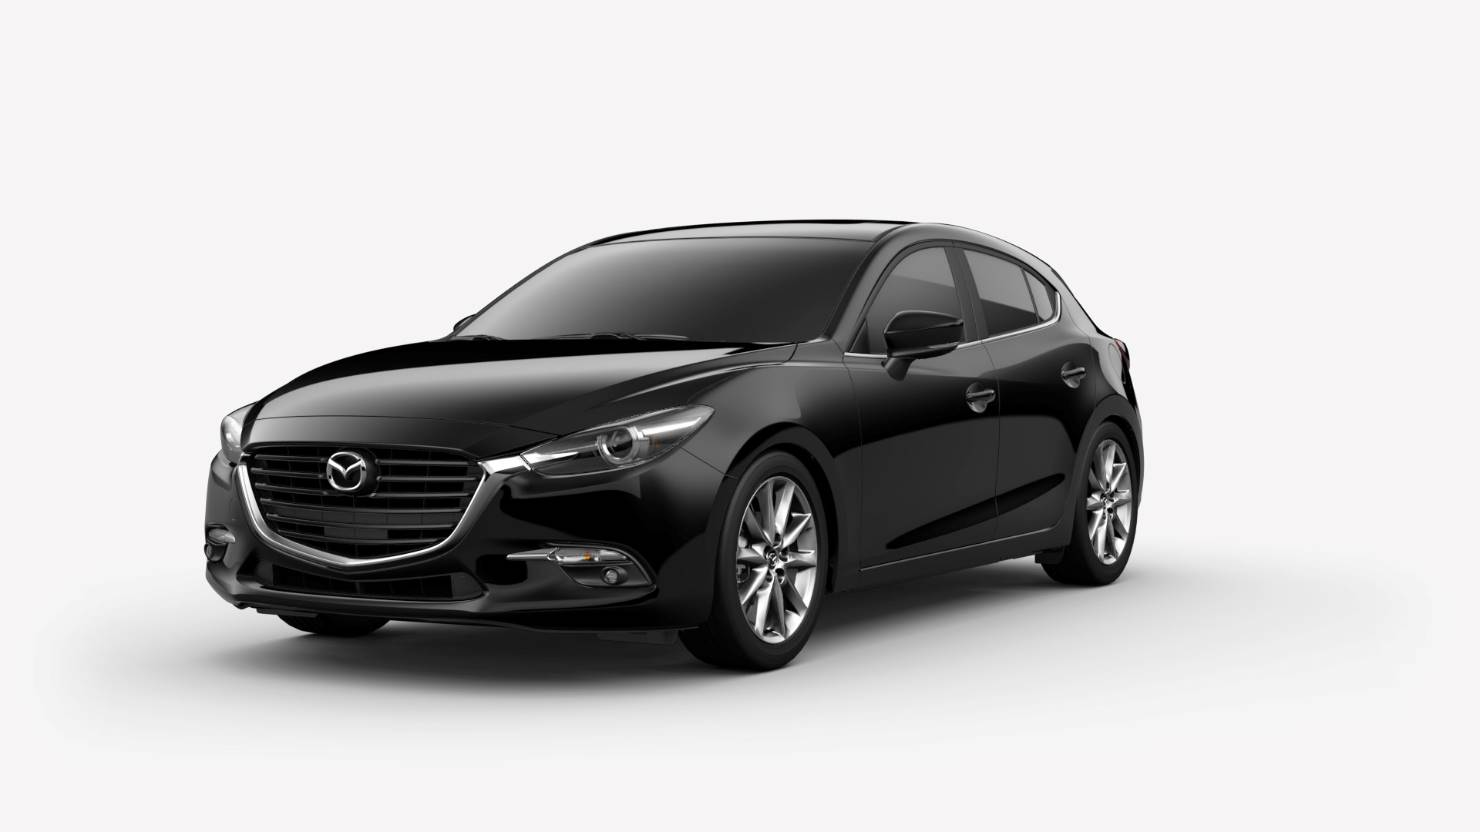 2018 Mazda3 Hatchback, Jet Black